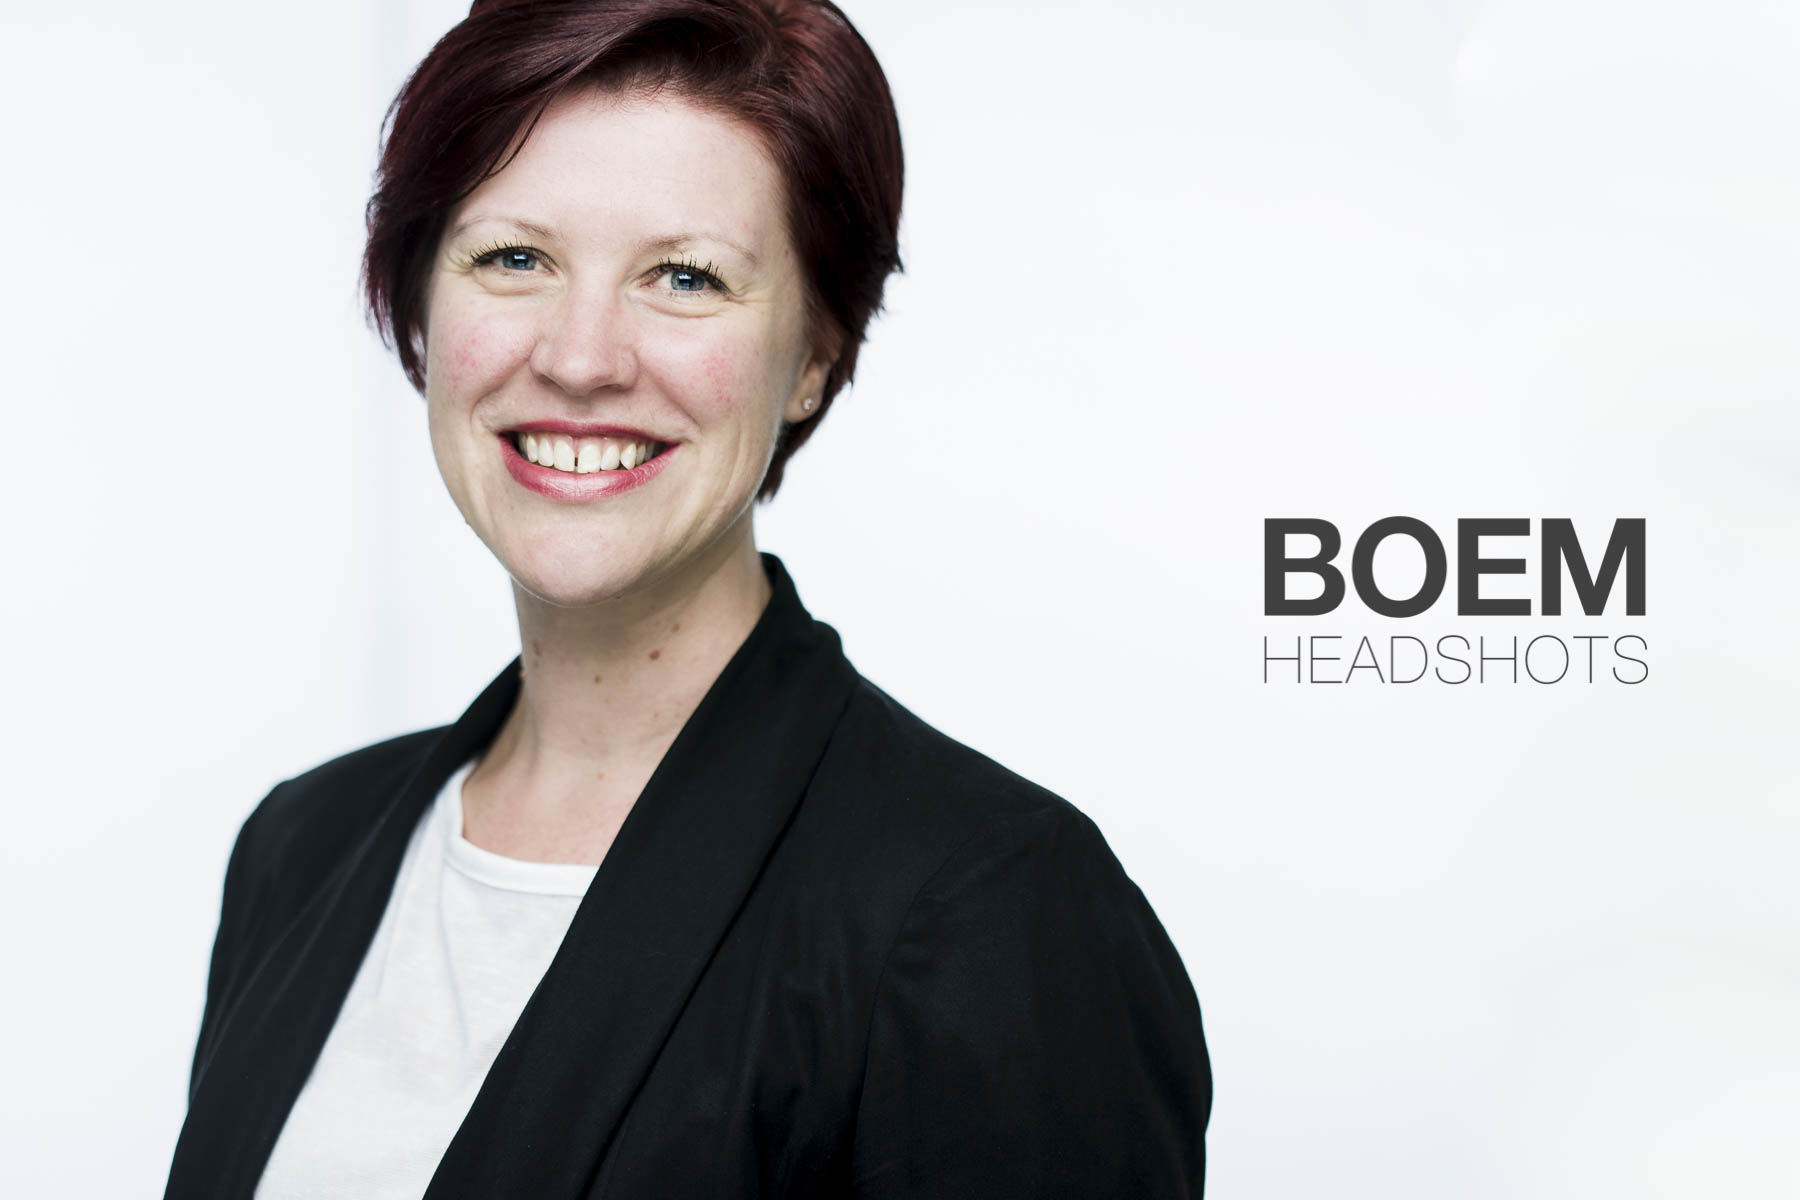 This is Stacey, a local executive here in Adelaide who needed a refresh on her headshots.